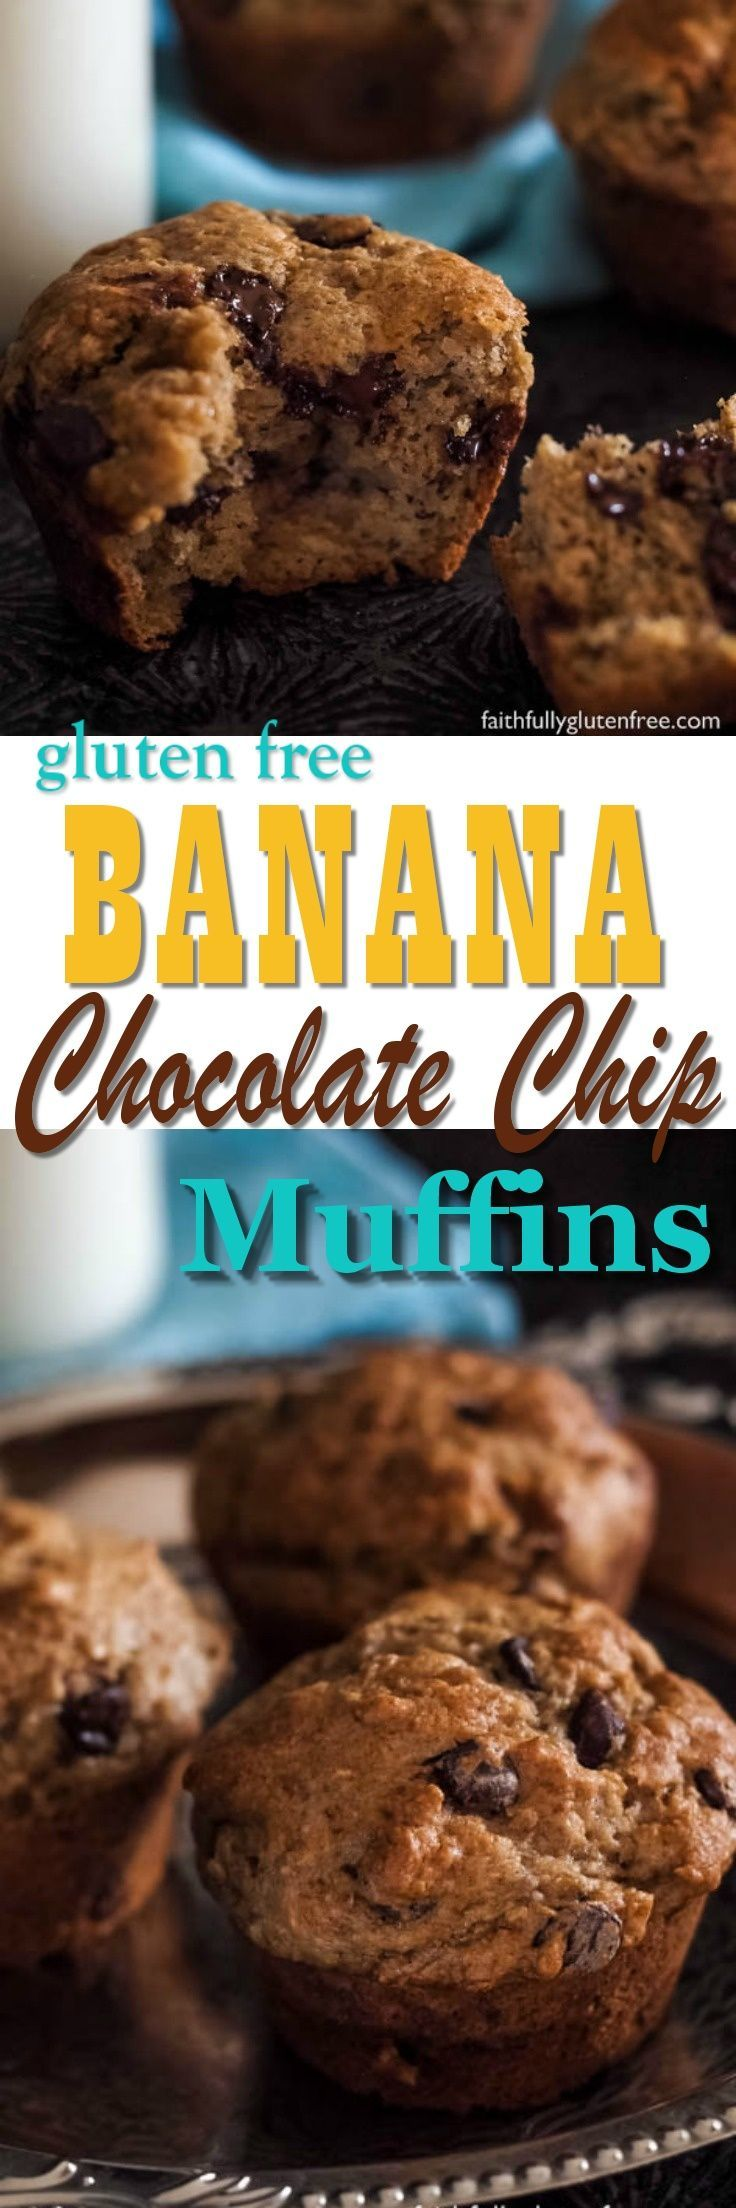 These gluten free Chocolate Chip Banana Muffins are perfect for the lunch kit, or an afternoon pick me up.